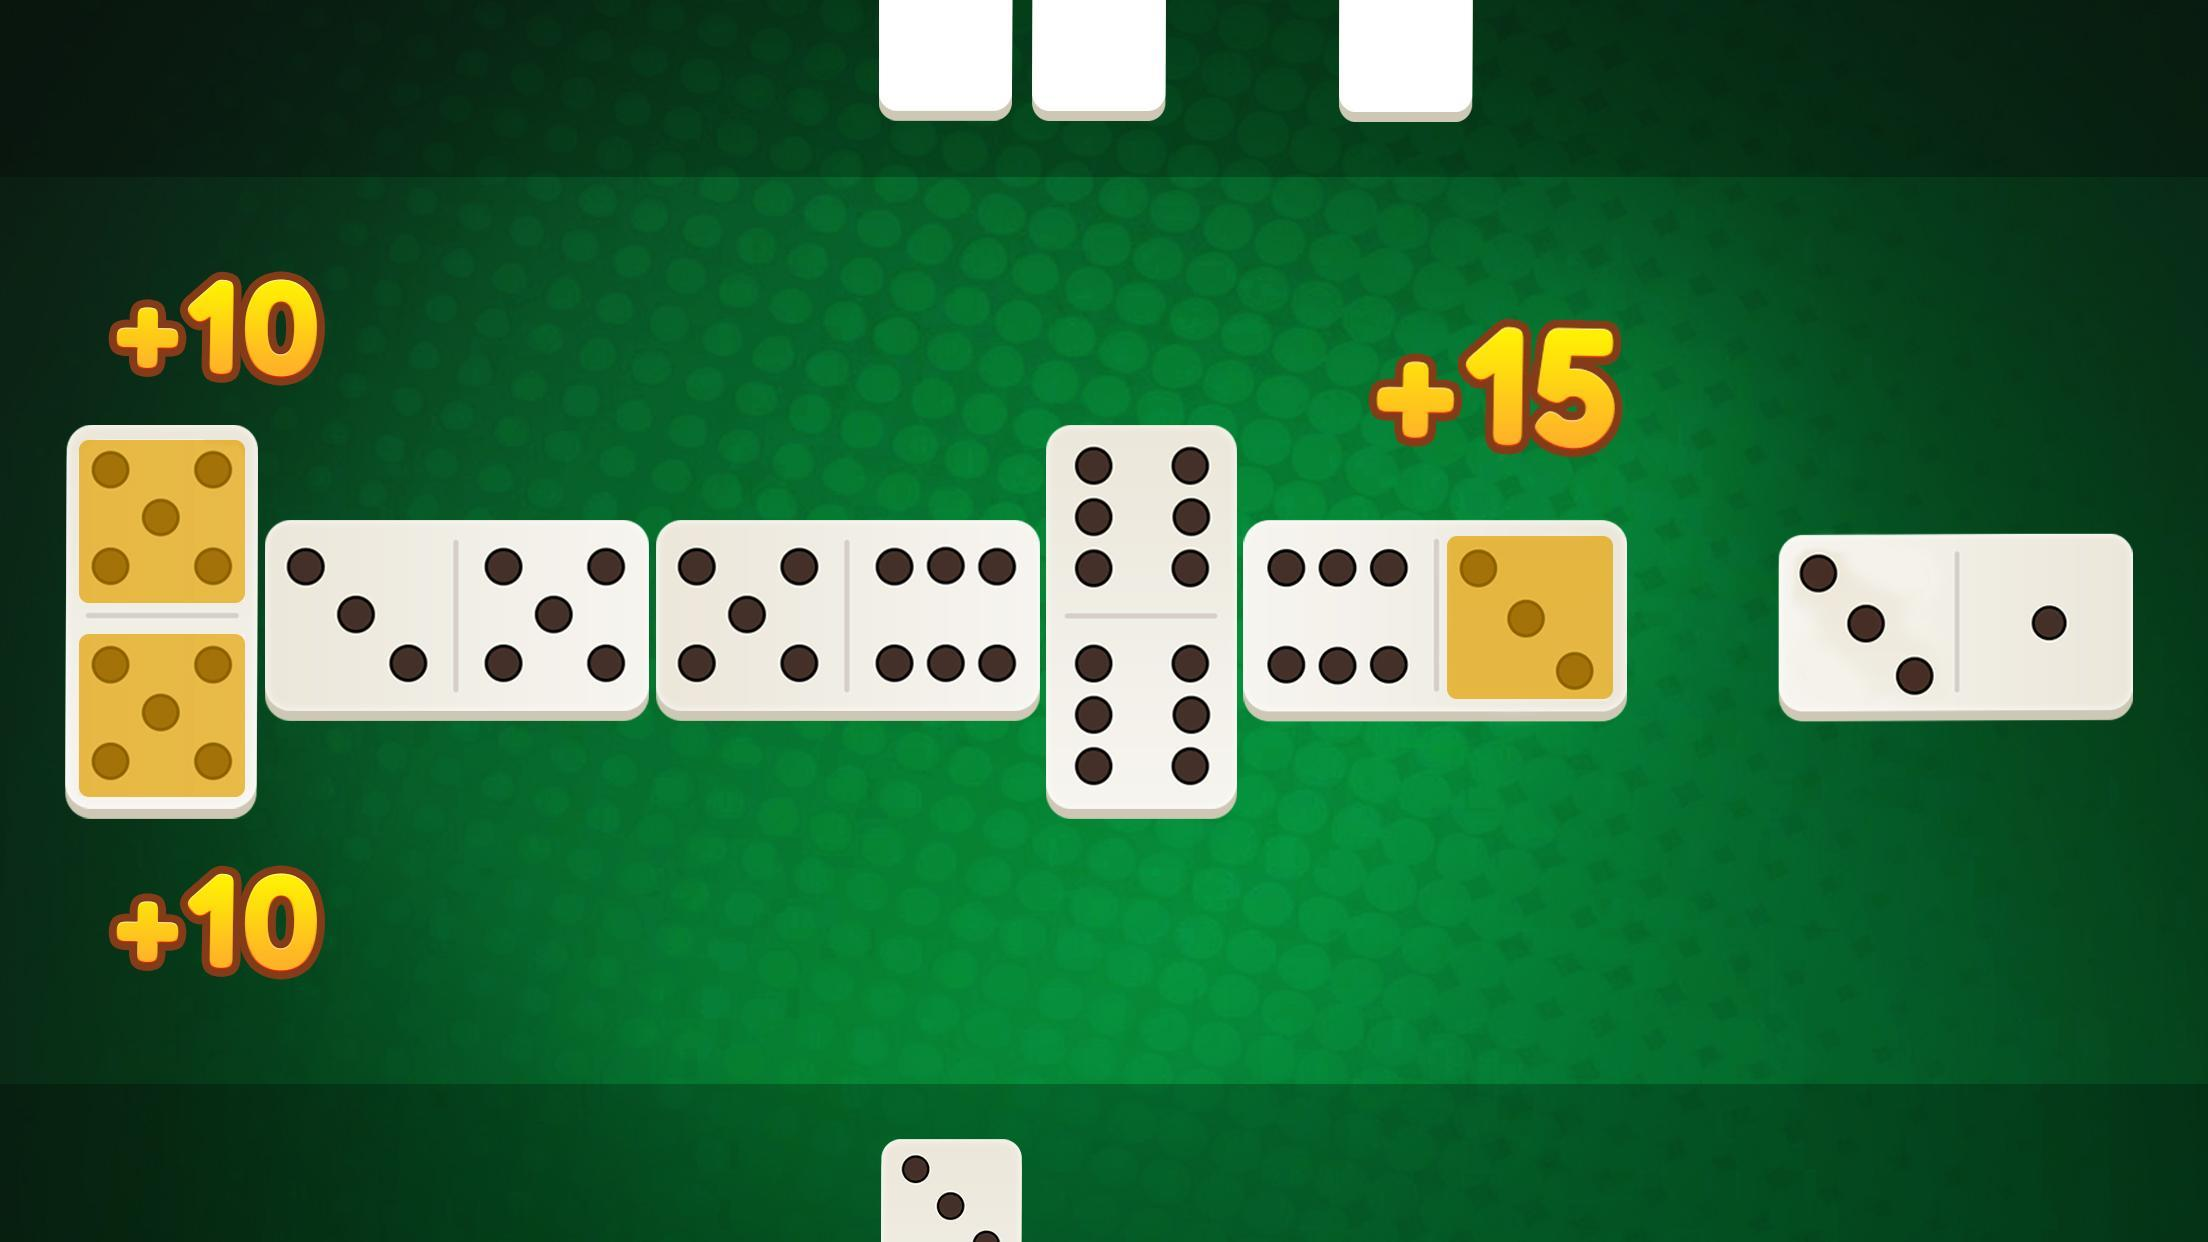 Dominos Party - Classic Domino Board Game 4.9.4 Screenshot 22